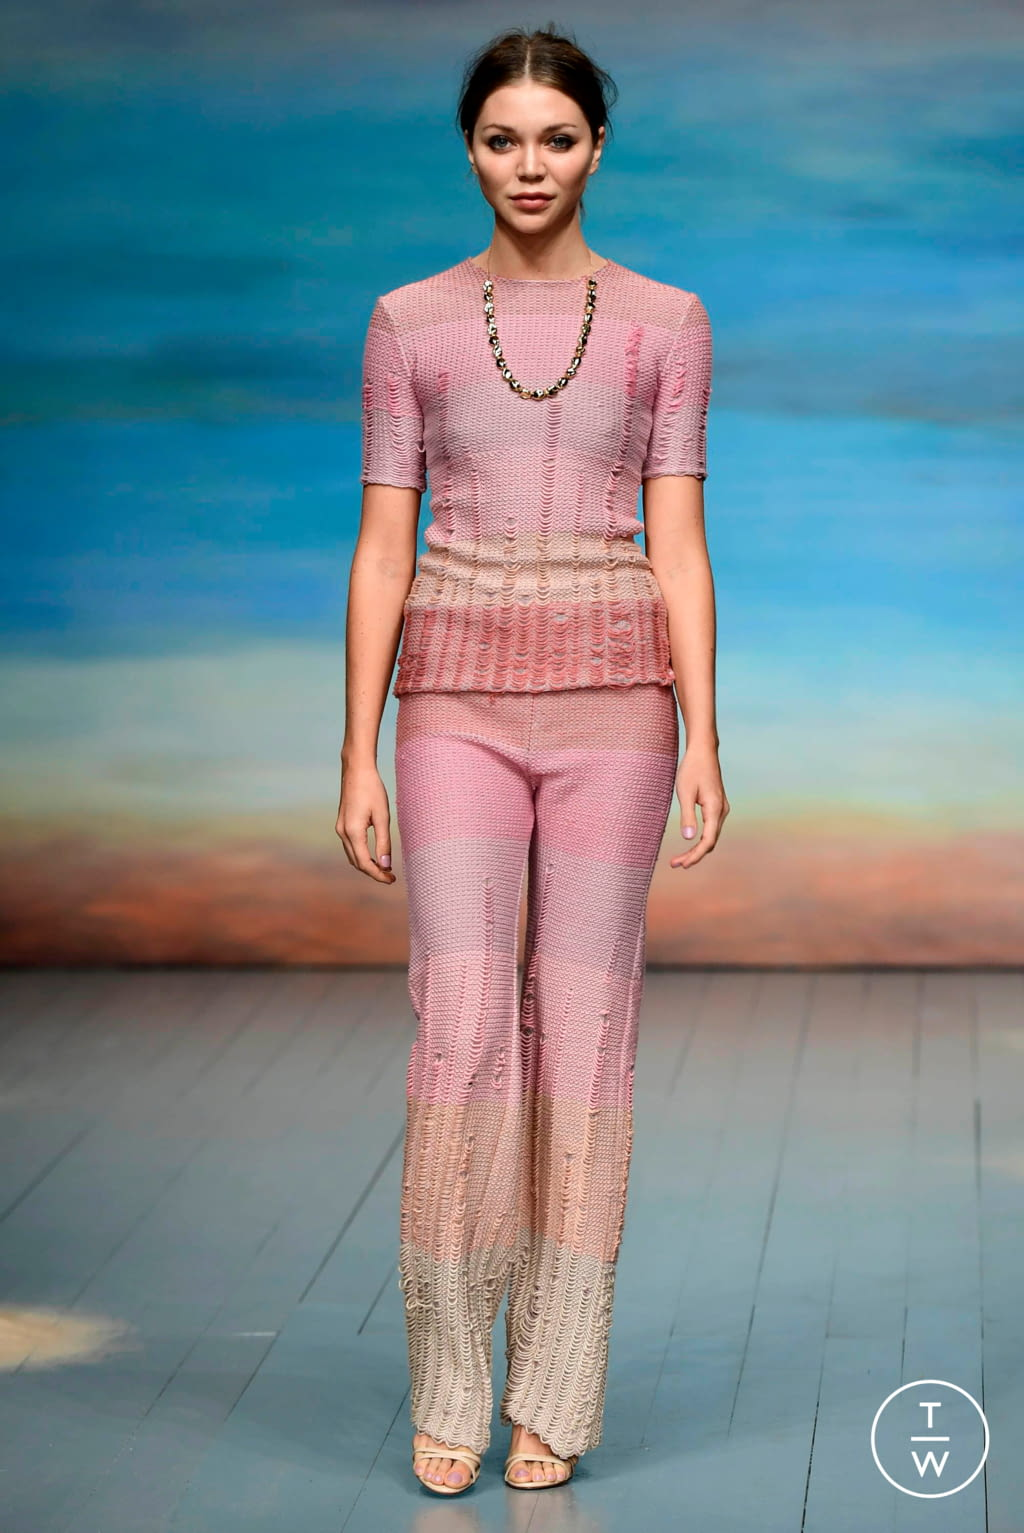 Fashion Week London Spring/Summer 2019 look 5 from the Roberta Einer collection 女装